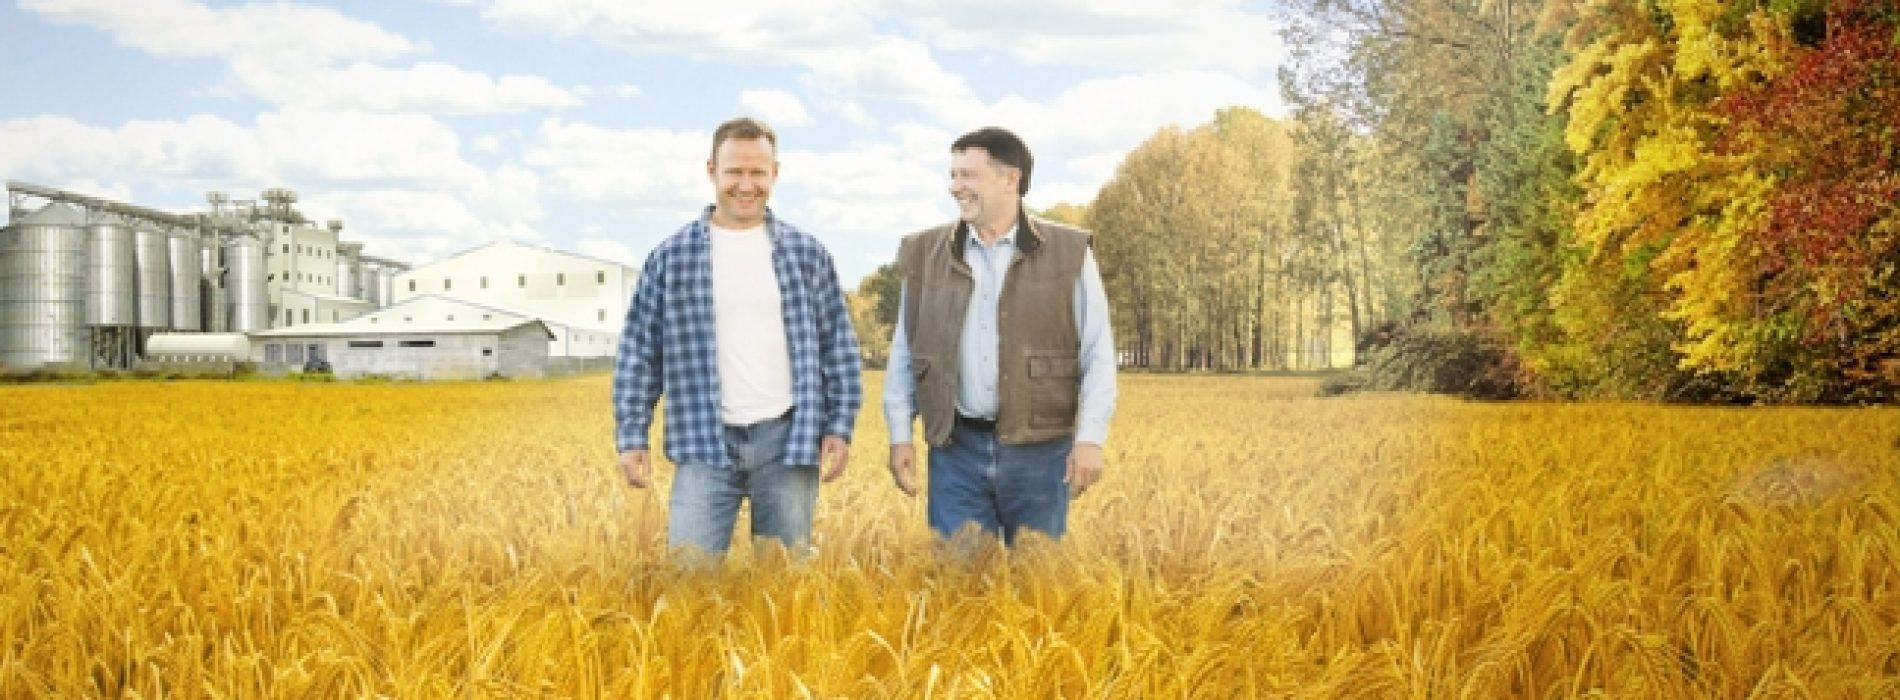 The Farmer of 2030 – Big Changes are on the Way